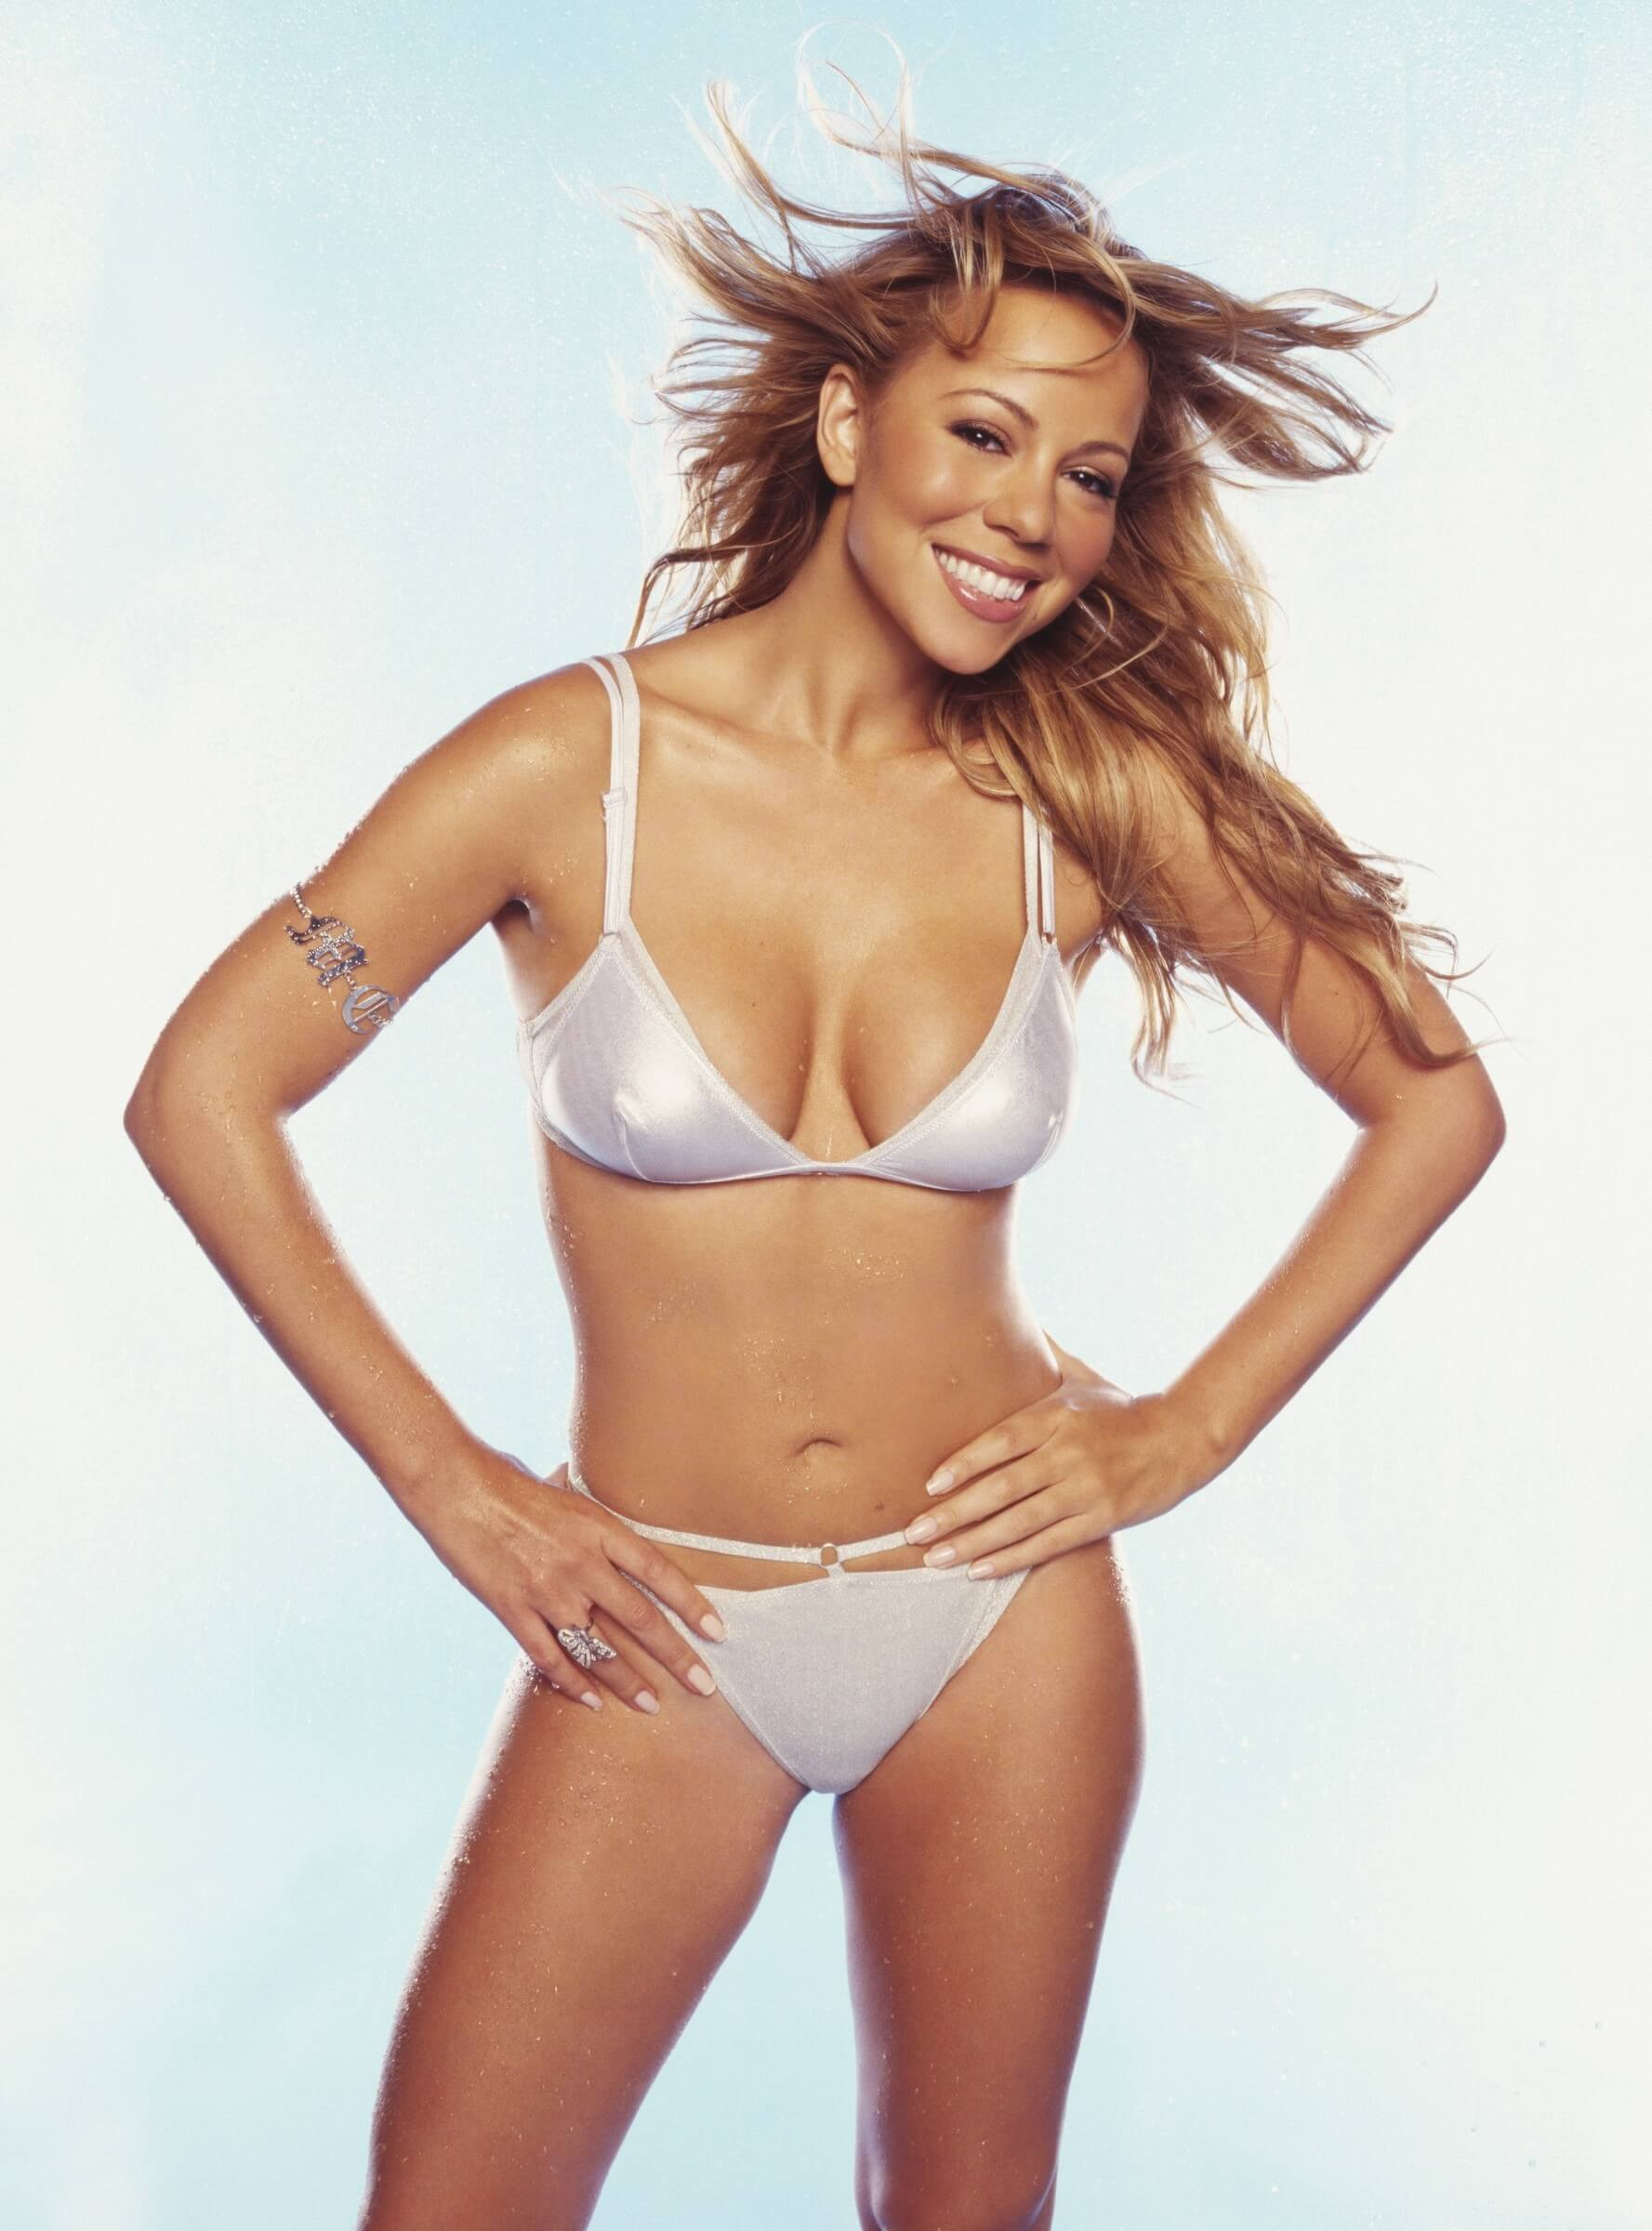 49 Hot Pictures Of Mariah Carey Are Going To Cheer You Up -3787